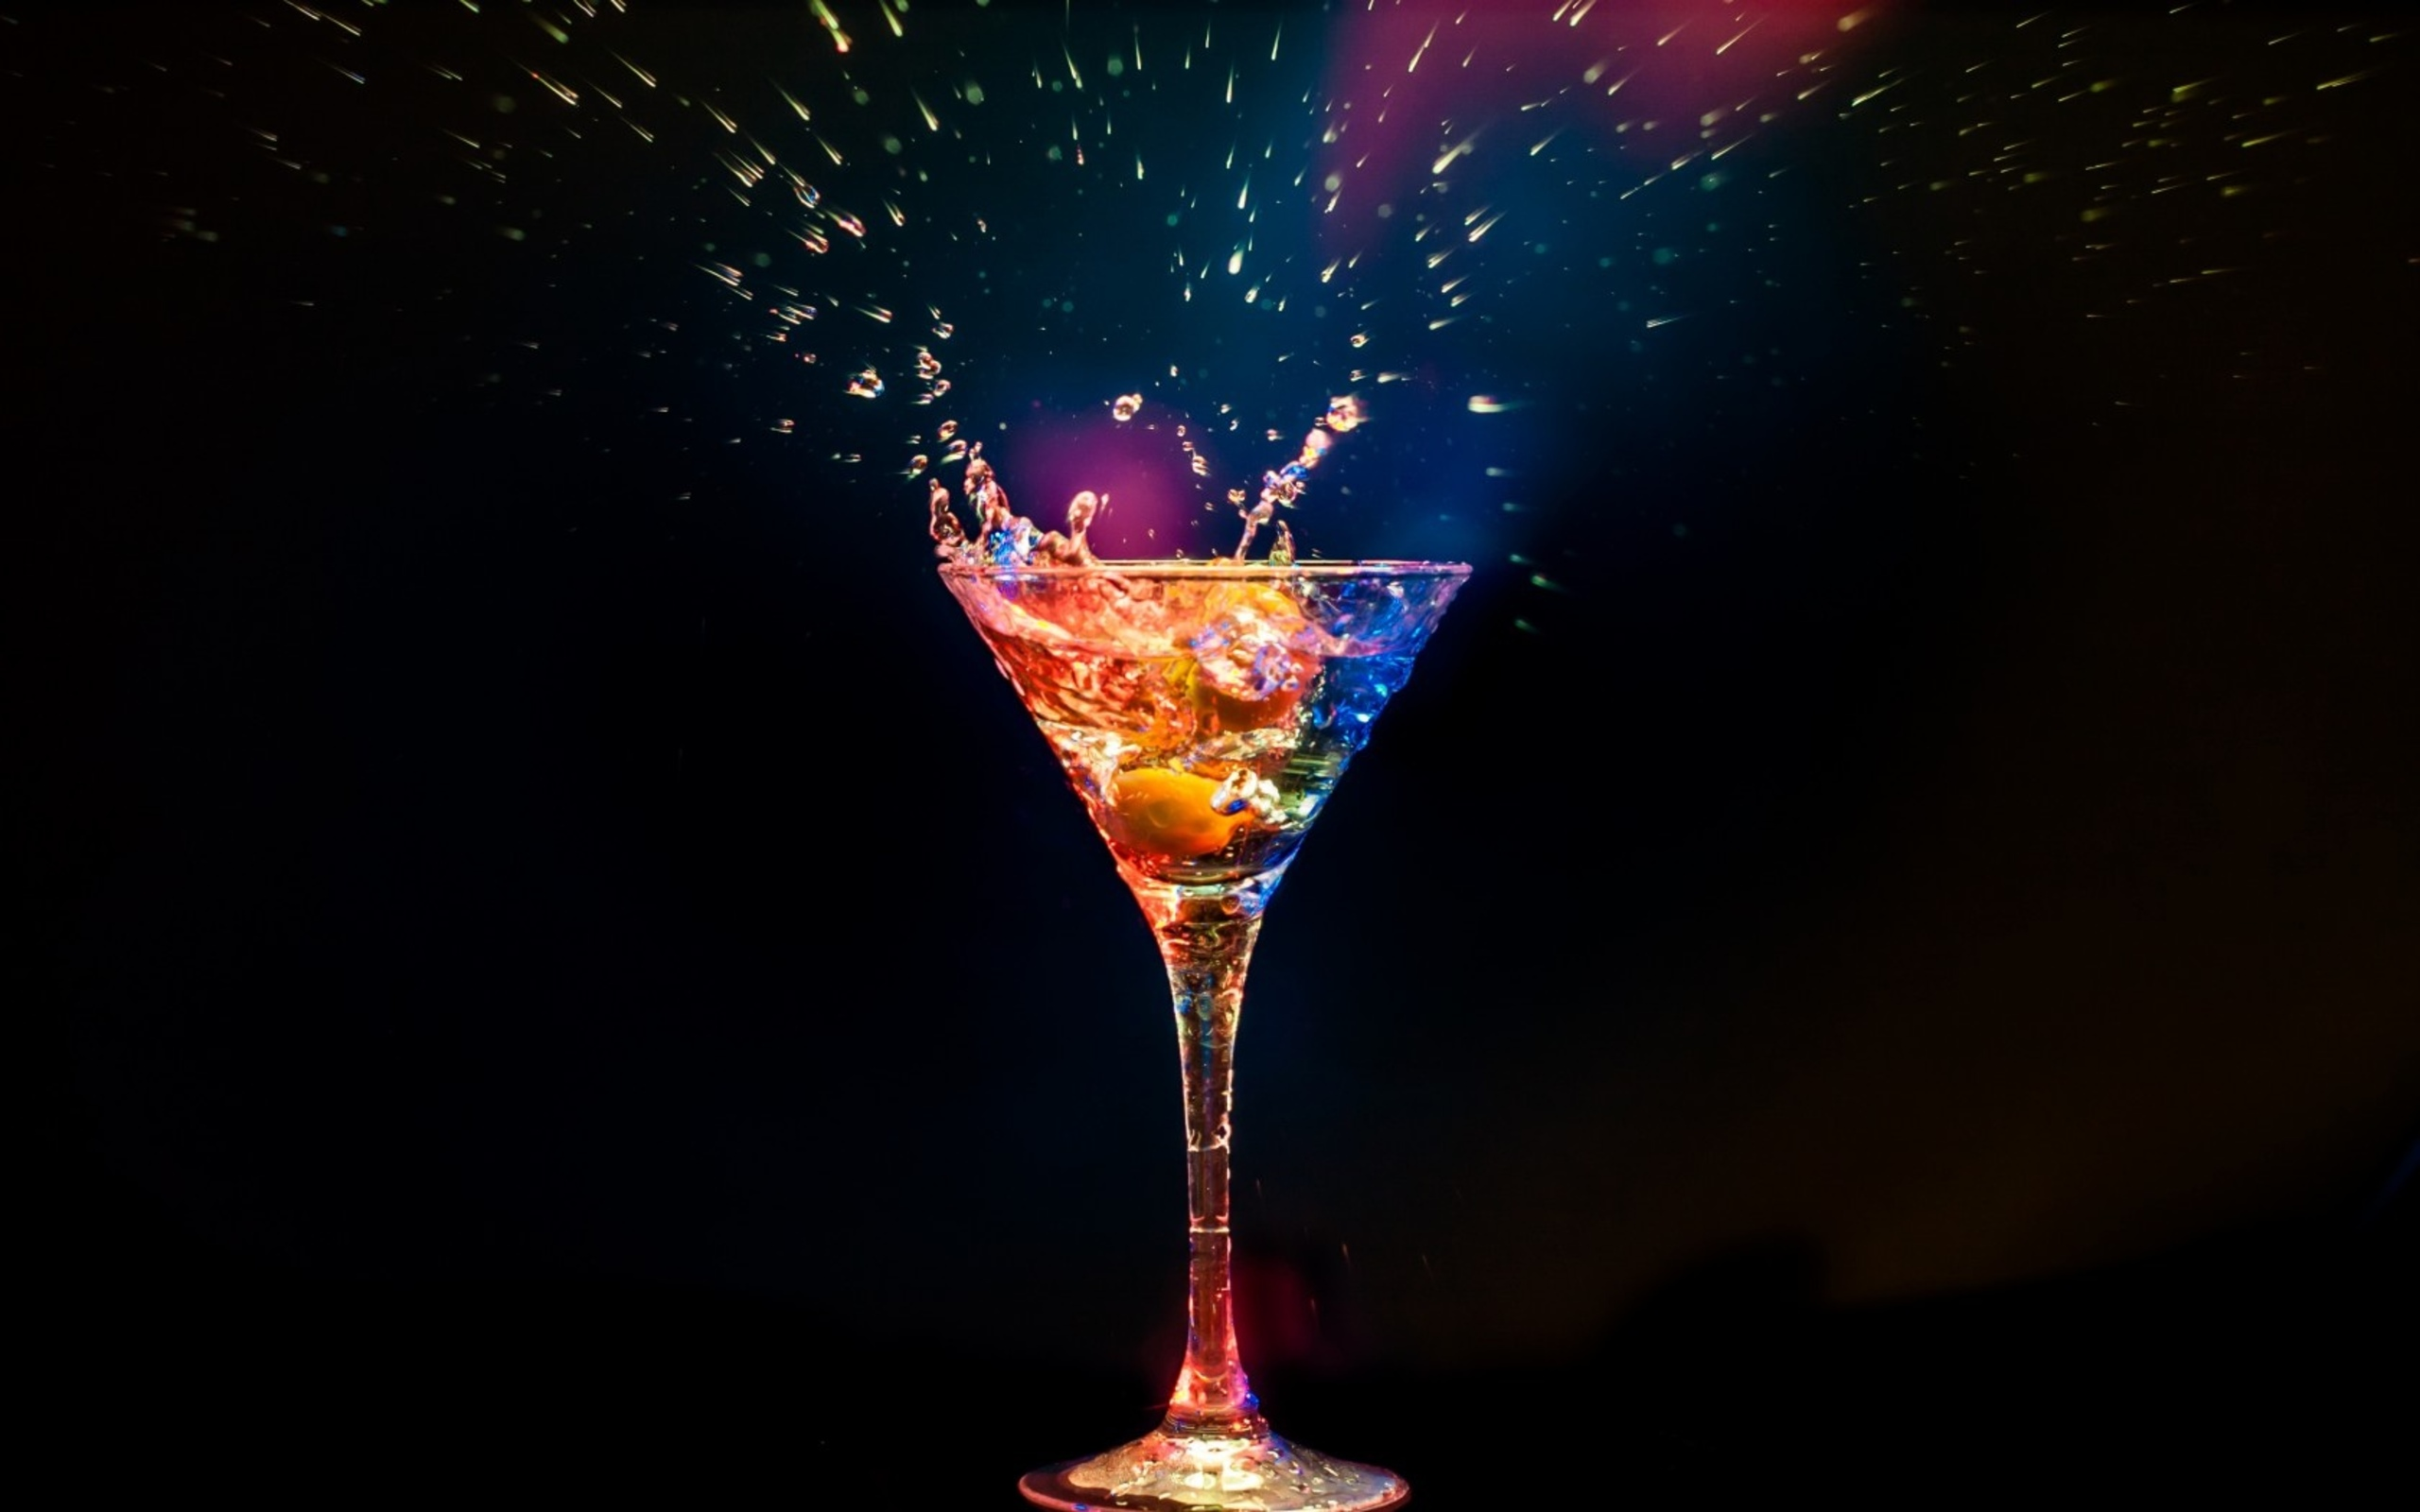 Adorable Cocktail Wallpaper, 39487962 2560x1600